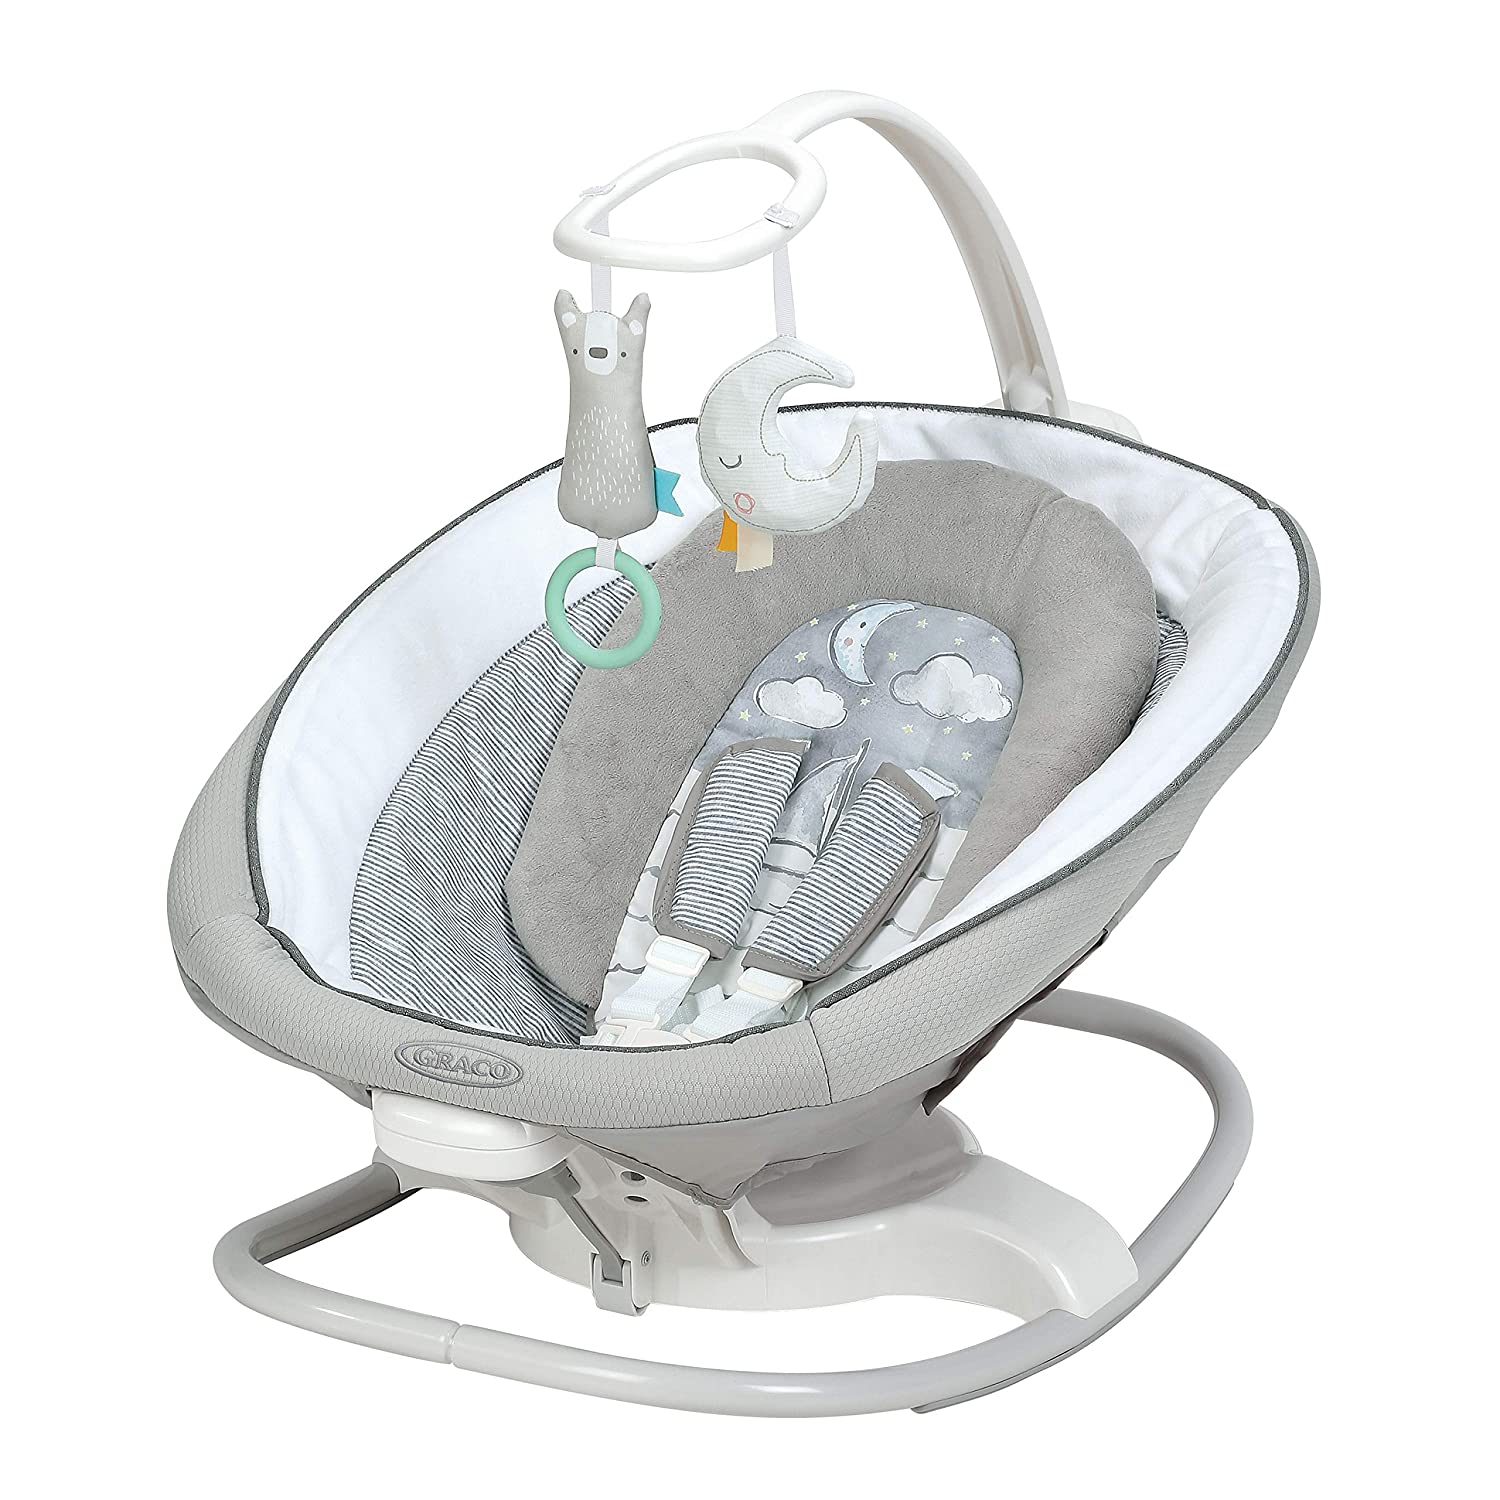 Sense2Soothe Baby Swing with Cry Detection Technology, Sailor Graco Baby 2060526